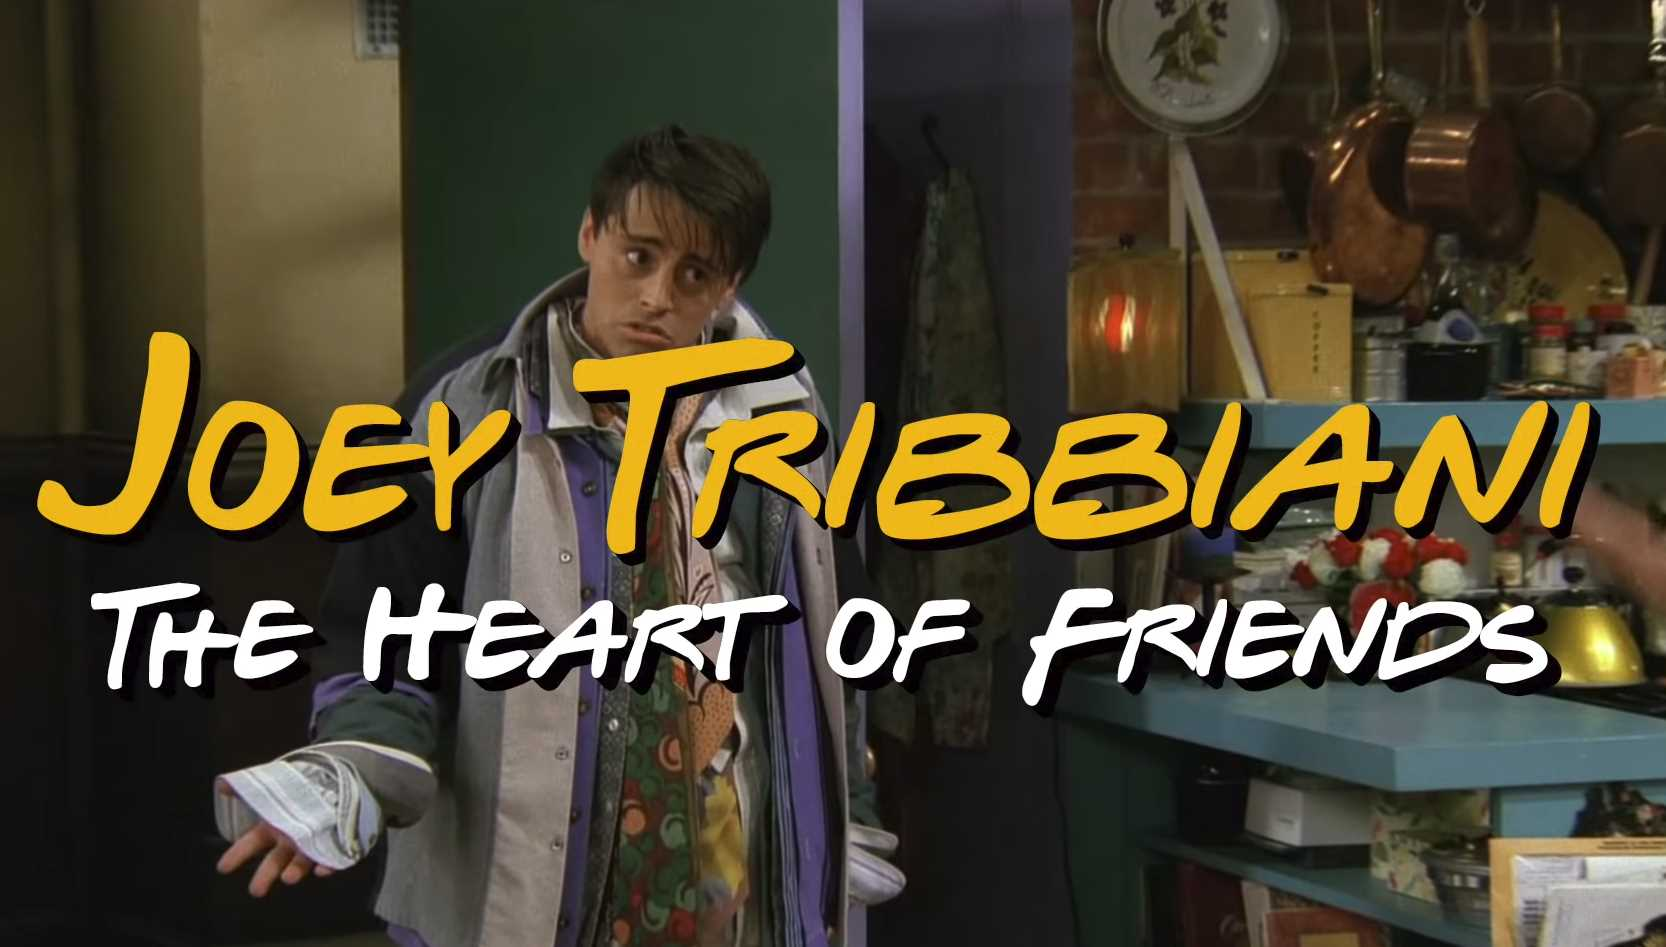 Joey_Tribbiani